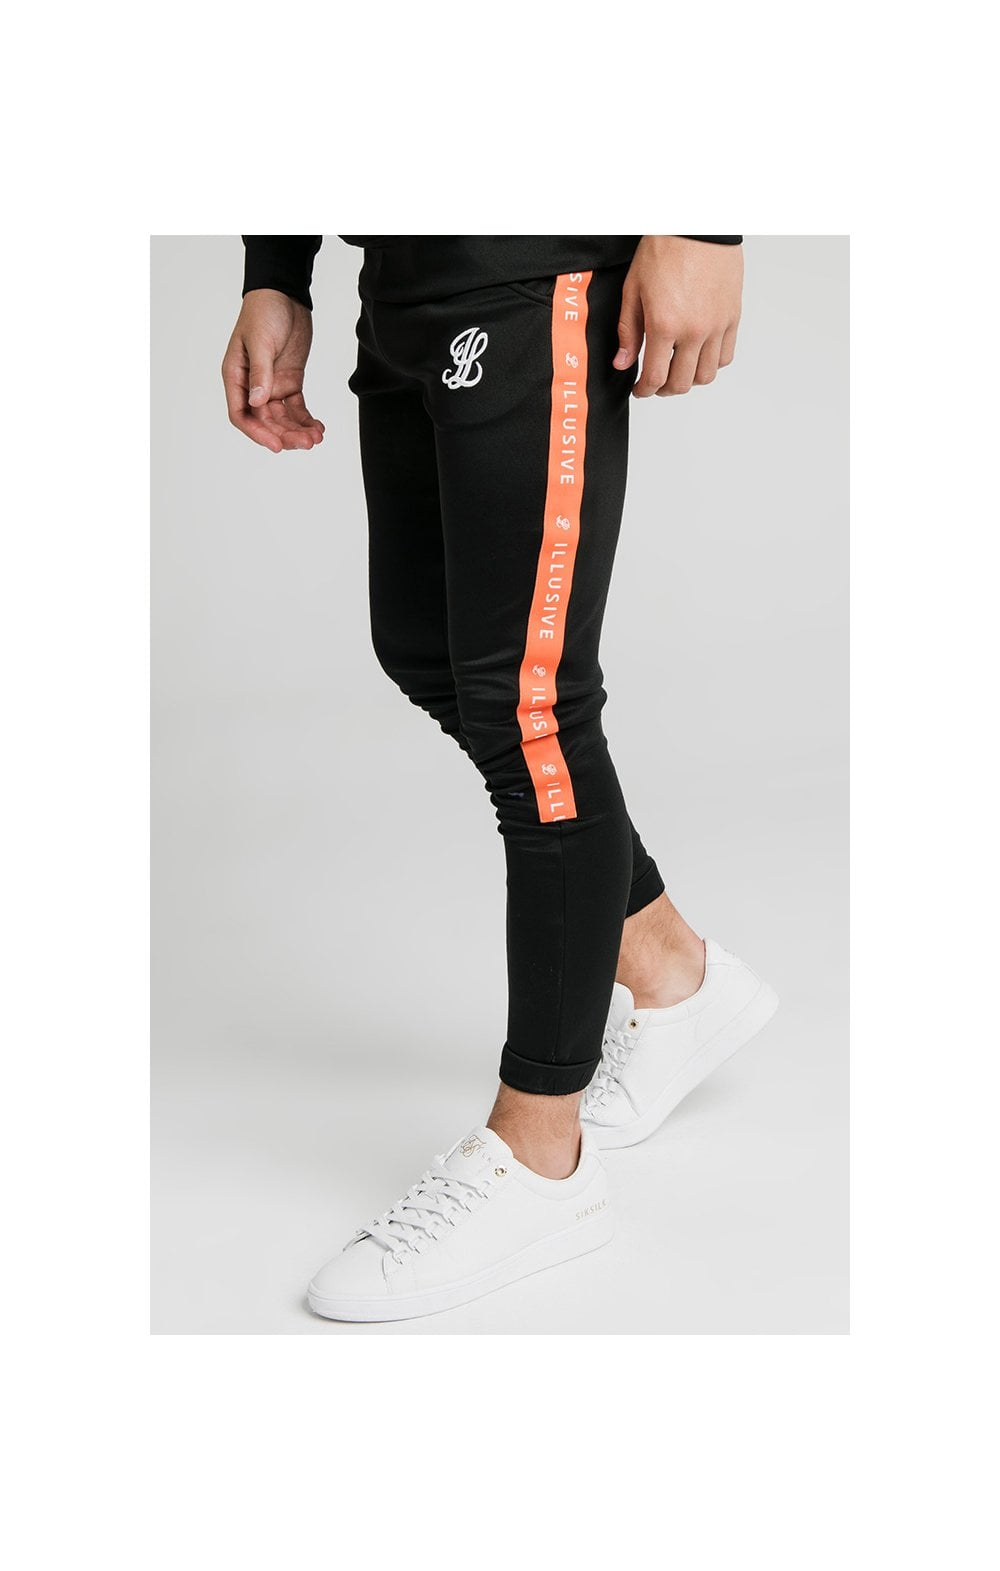 Illusive London Tape Joggers - Black (3)